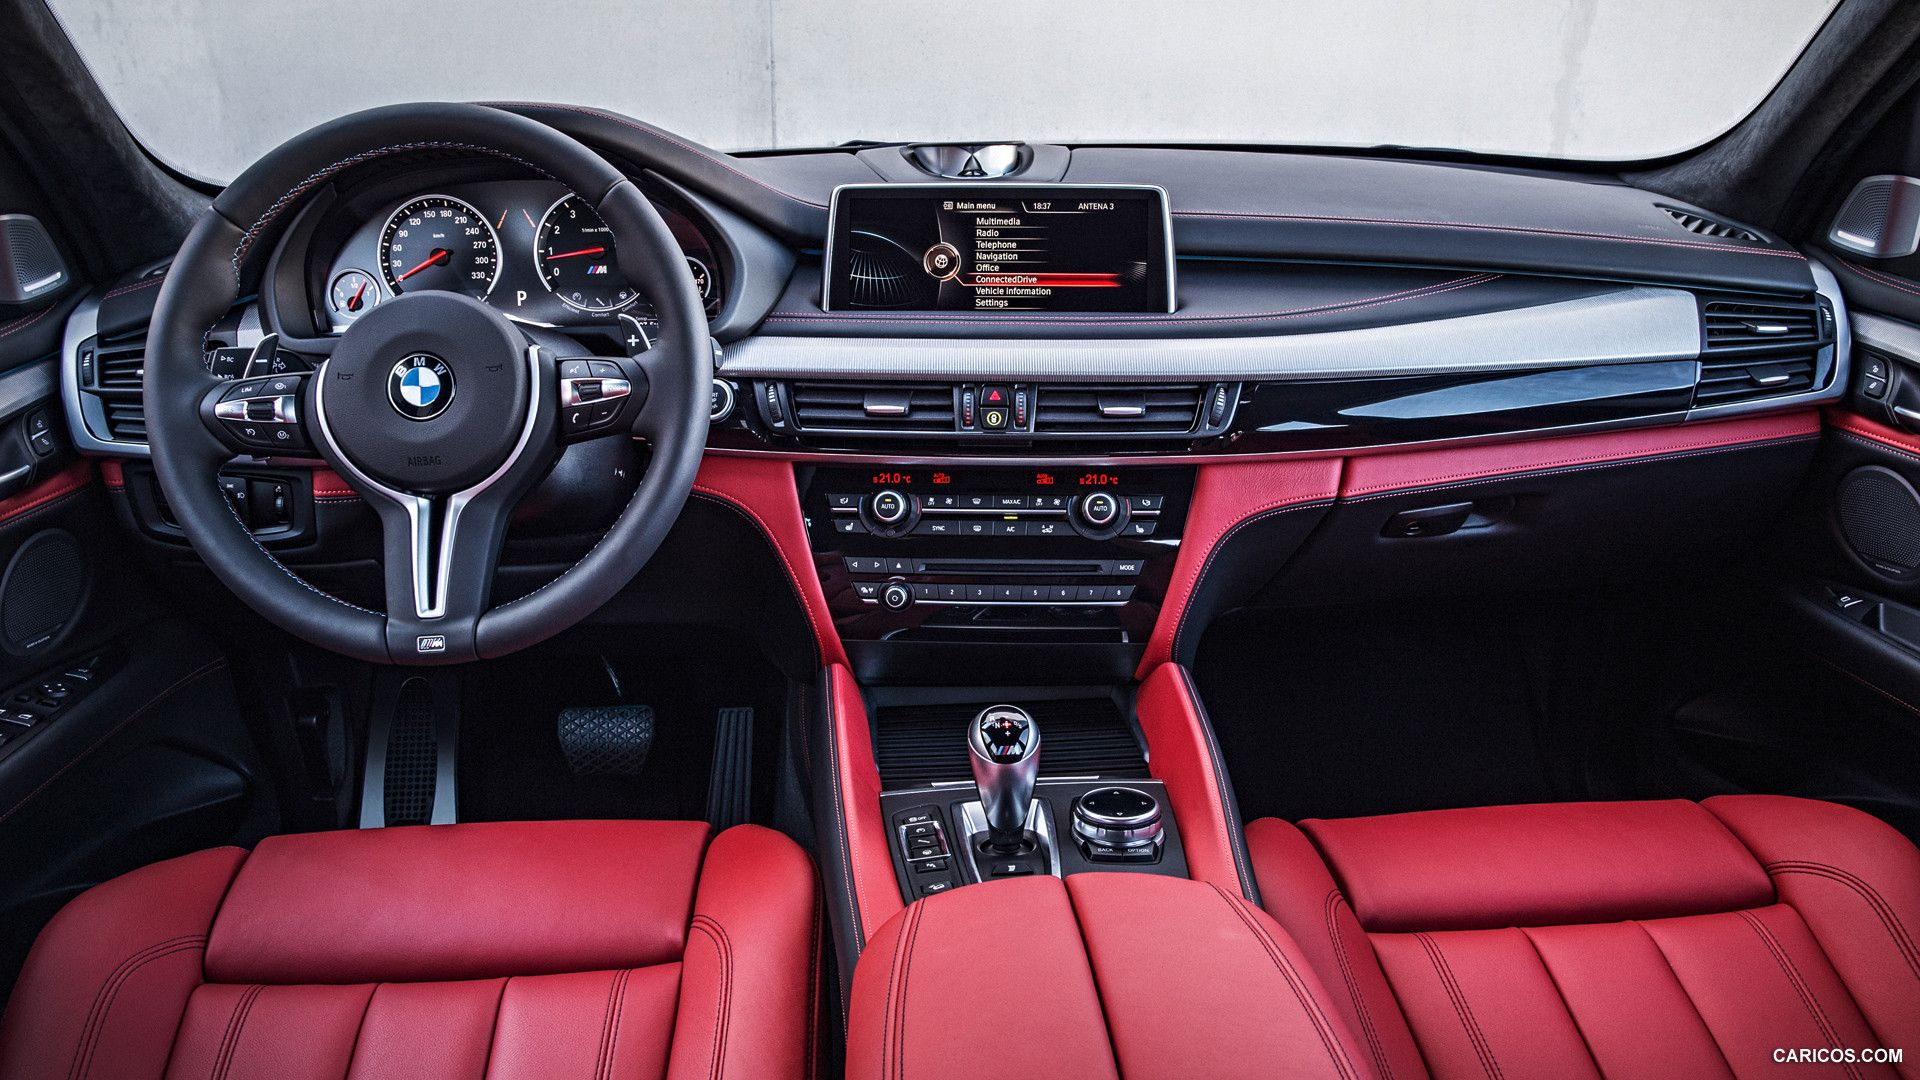 Insane Shots Of This Bmw X5 M Interior Is This The Ultimate Car